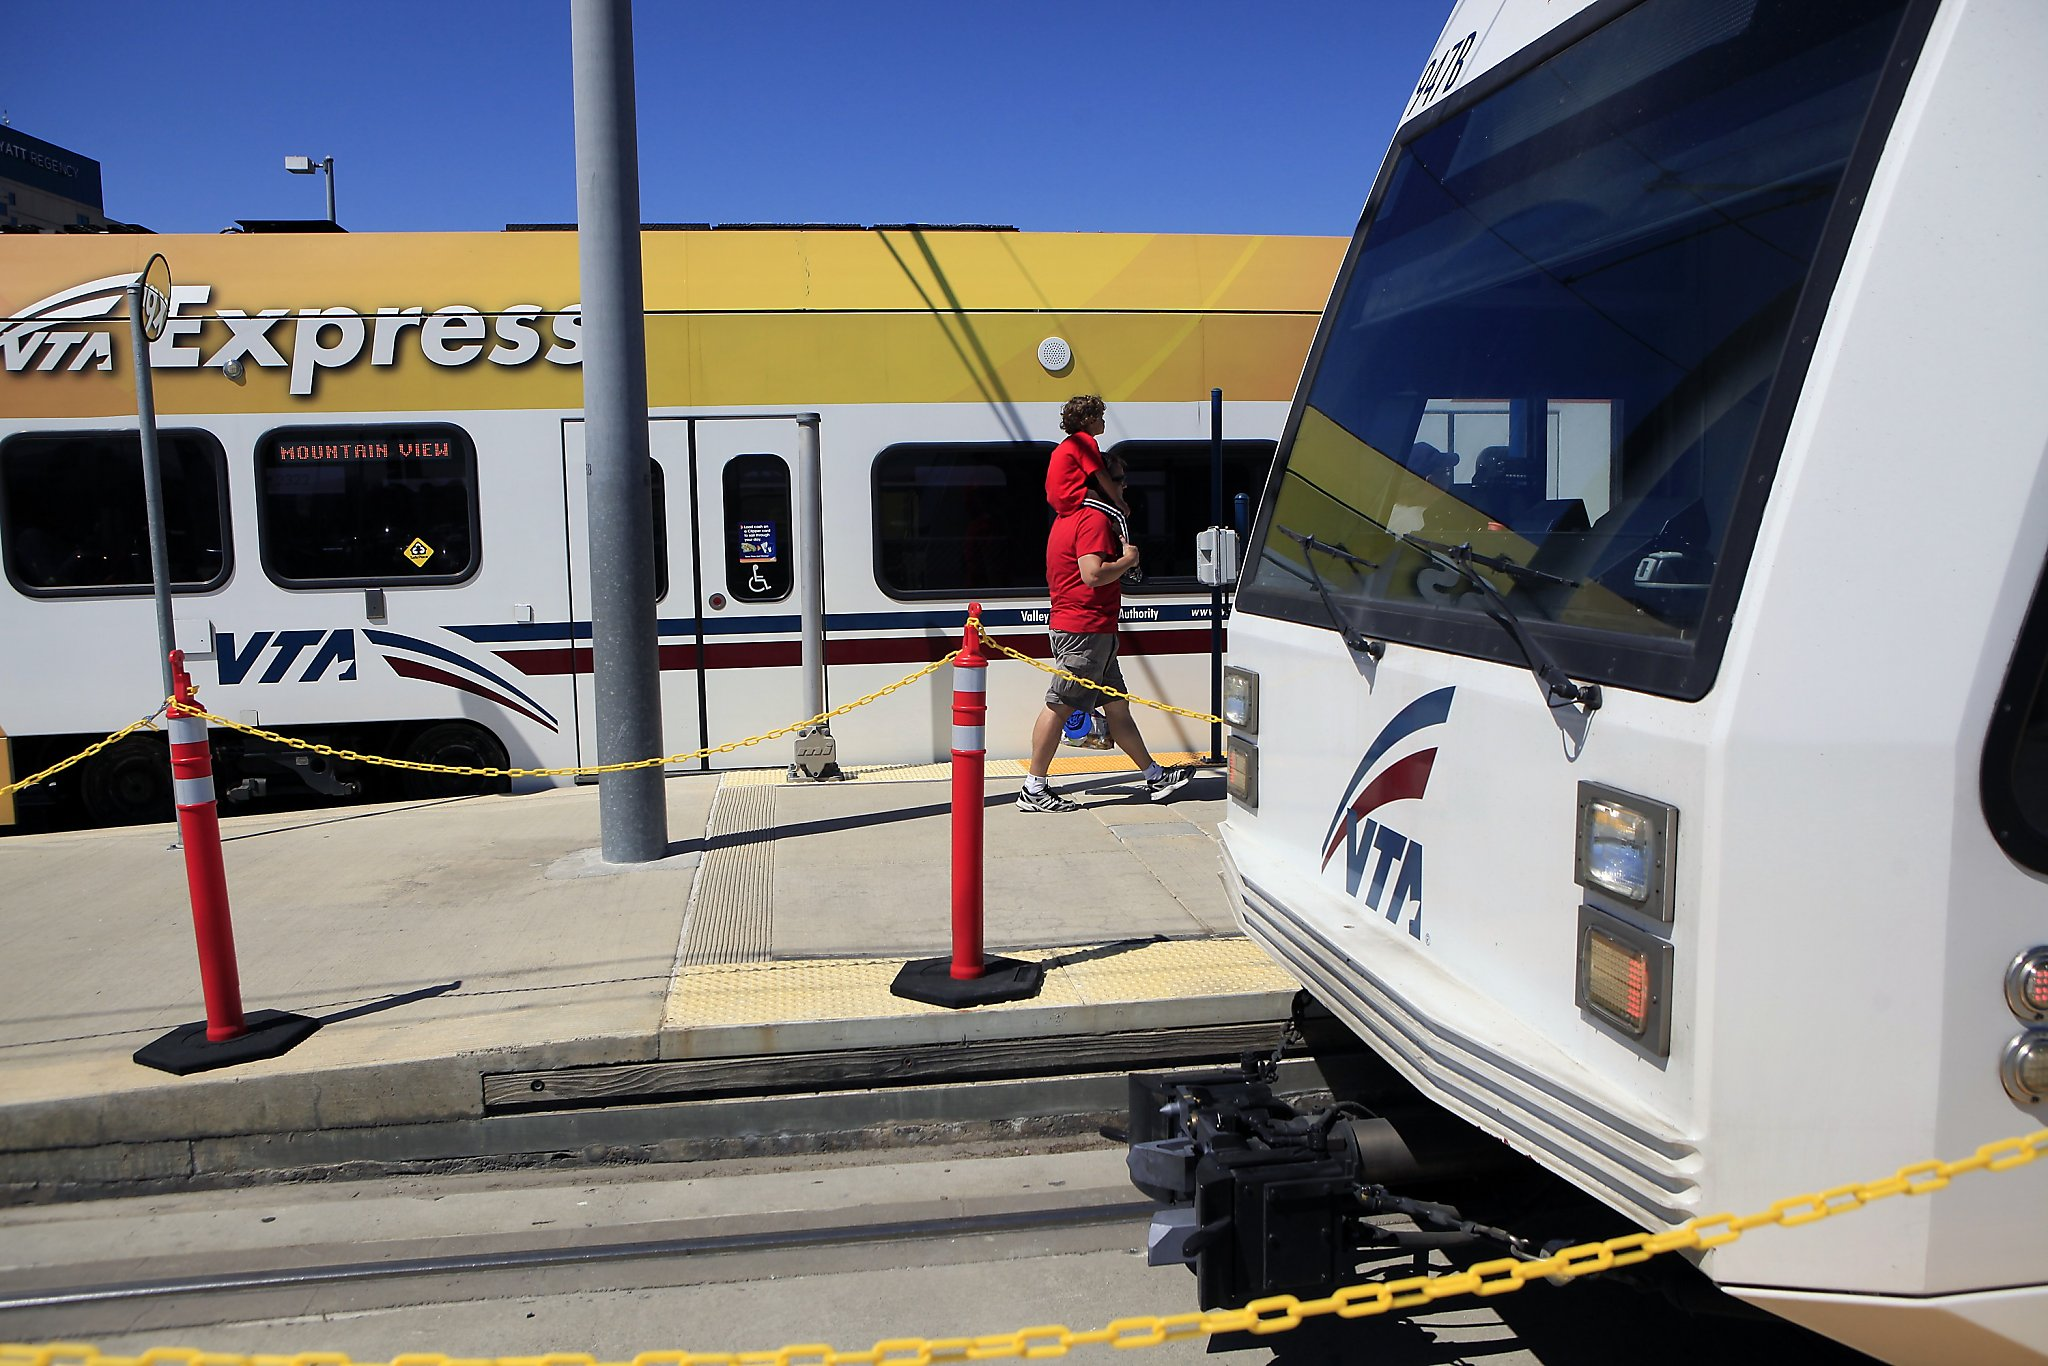 VTA expected to sell 2,500 49ers train tickets to Levi's, have only sold 11 - SFGate